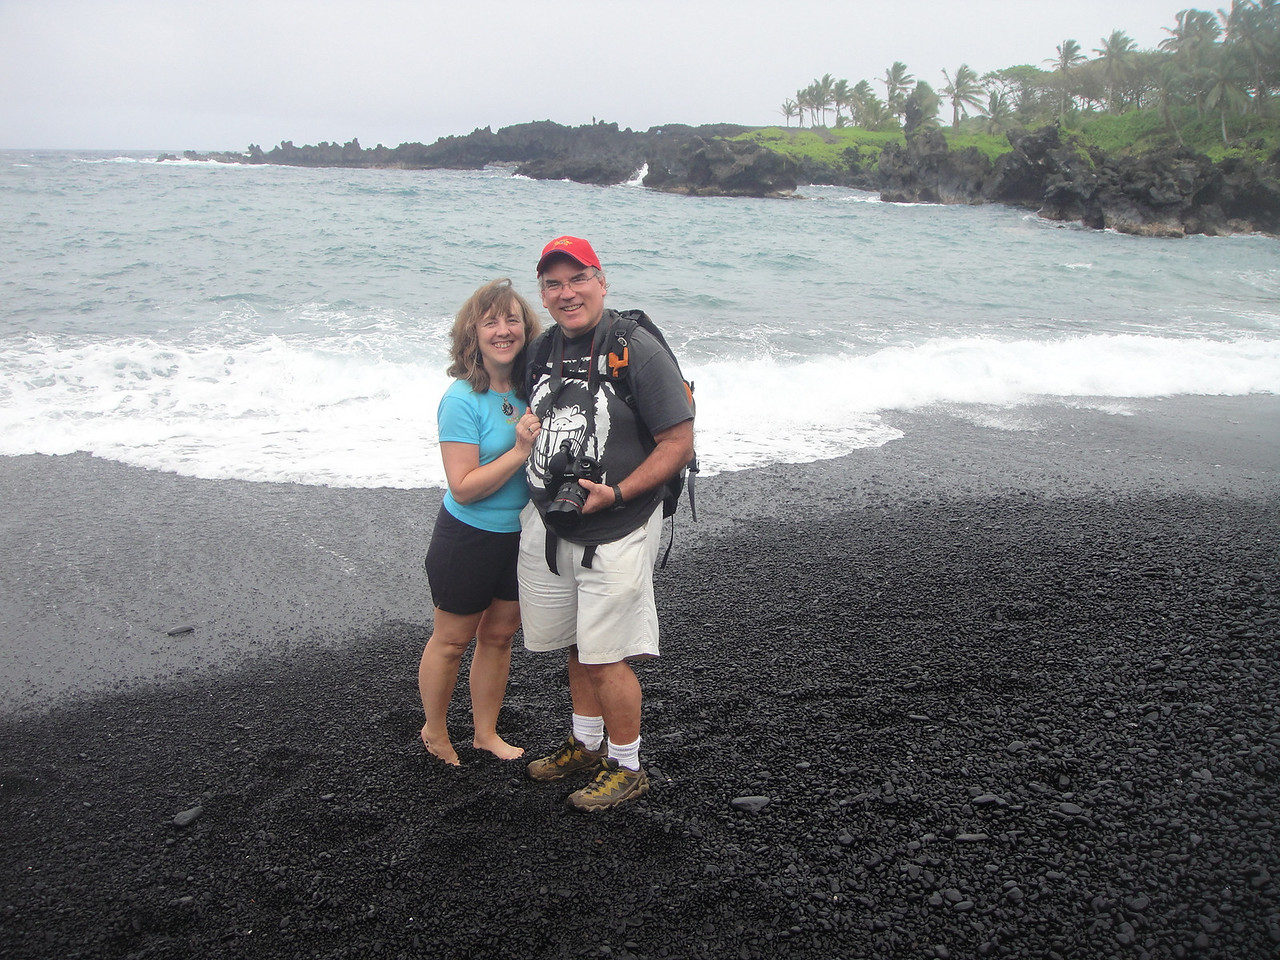 I didn't realize there were so many black sand beaches!  Love them!